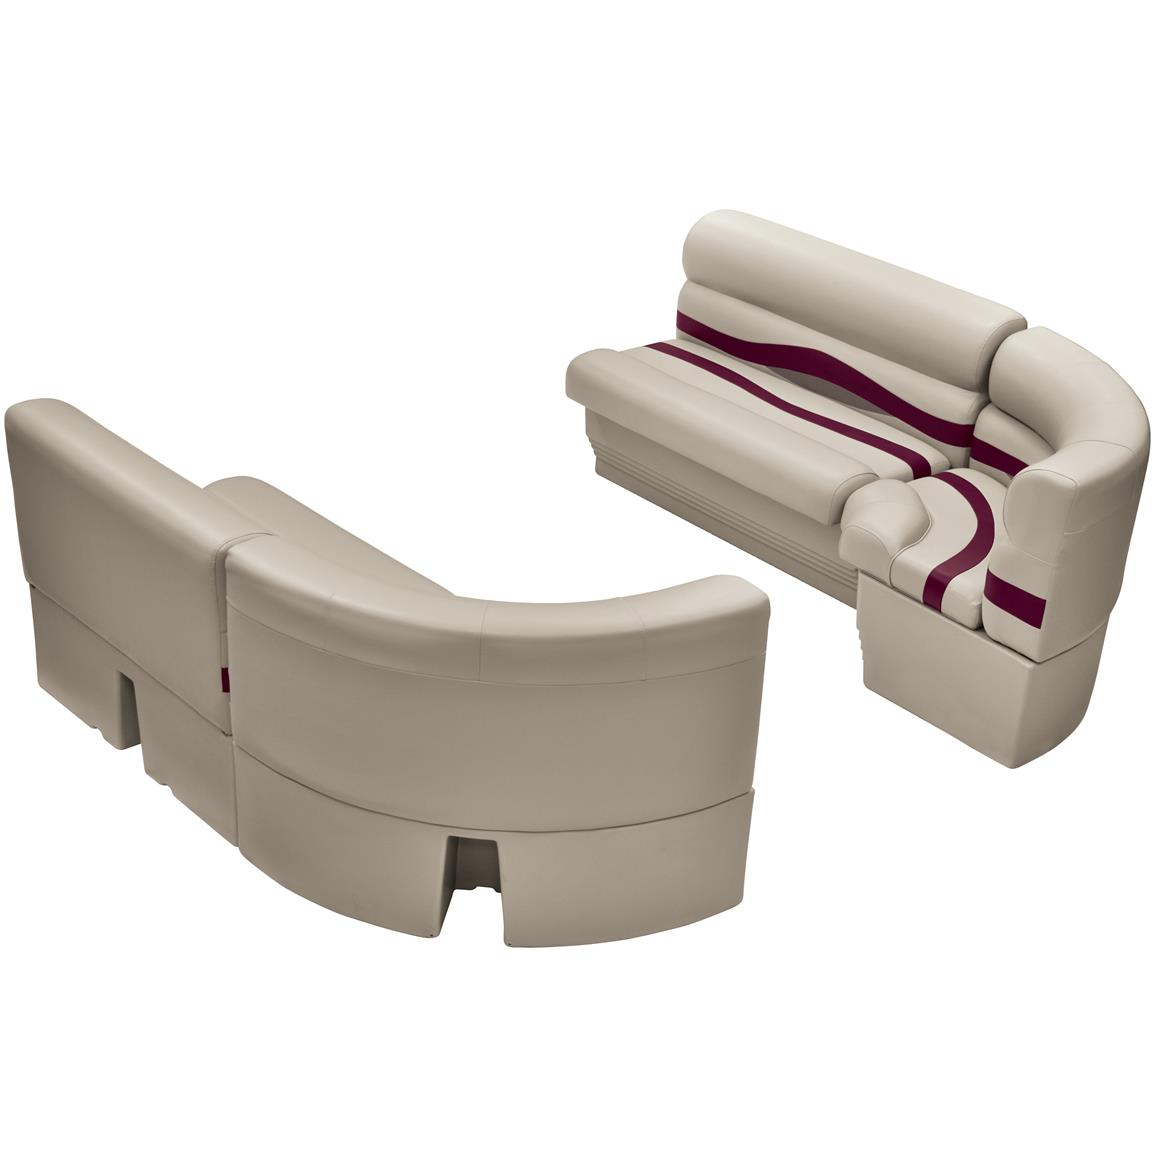 Wise® Premier Pontoon Medium Bow Radius Front Seating Group, Color F: Platinum Punch / Wineberry / Manatee